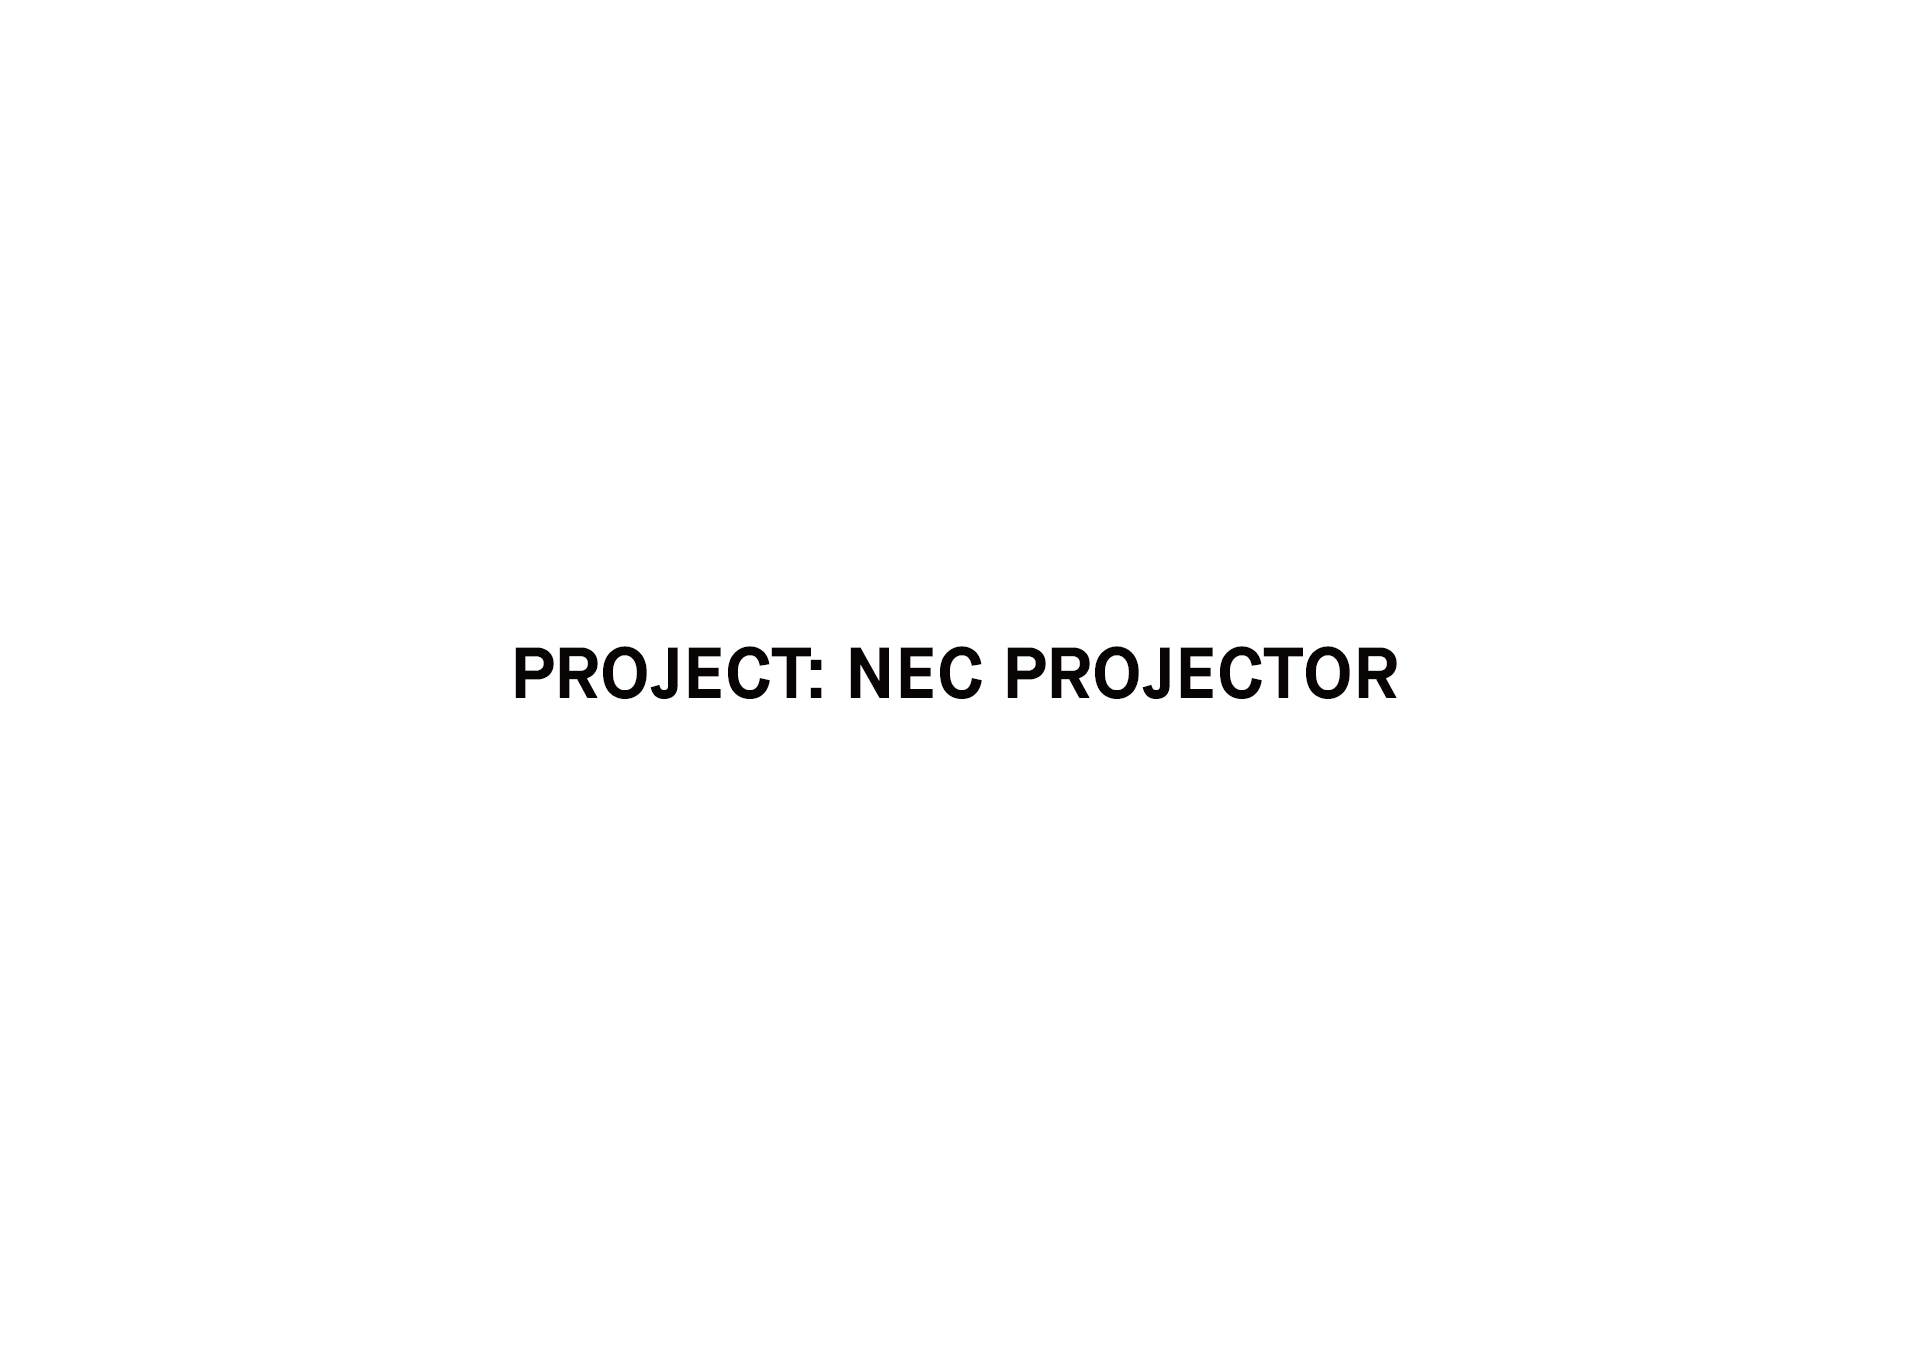 NEC Projector Project